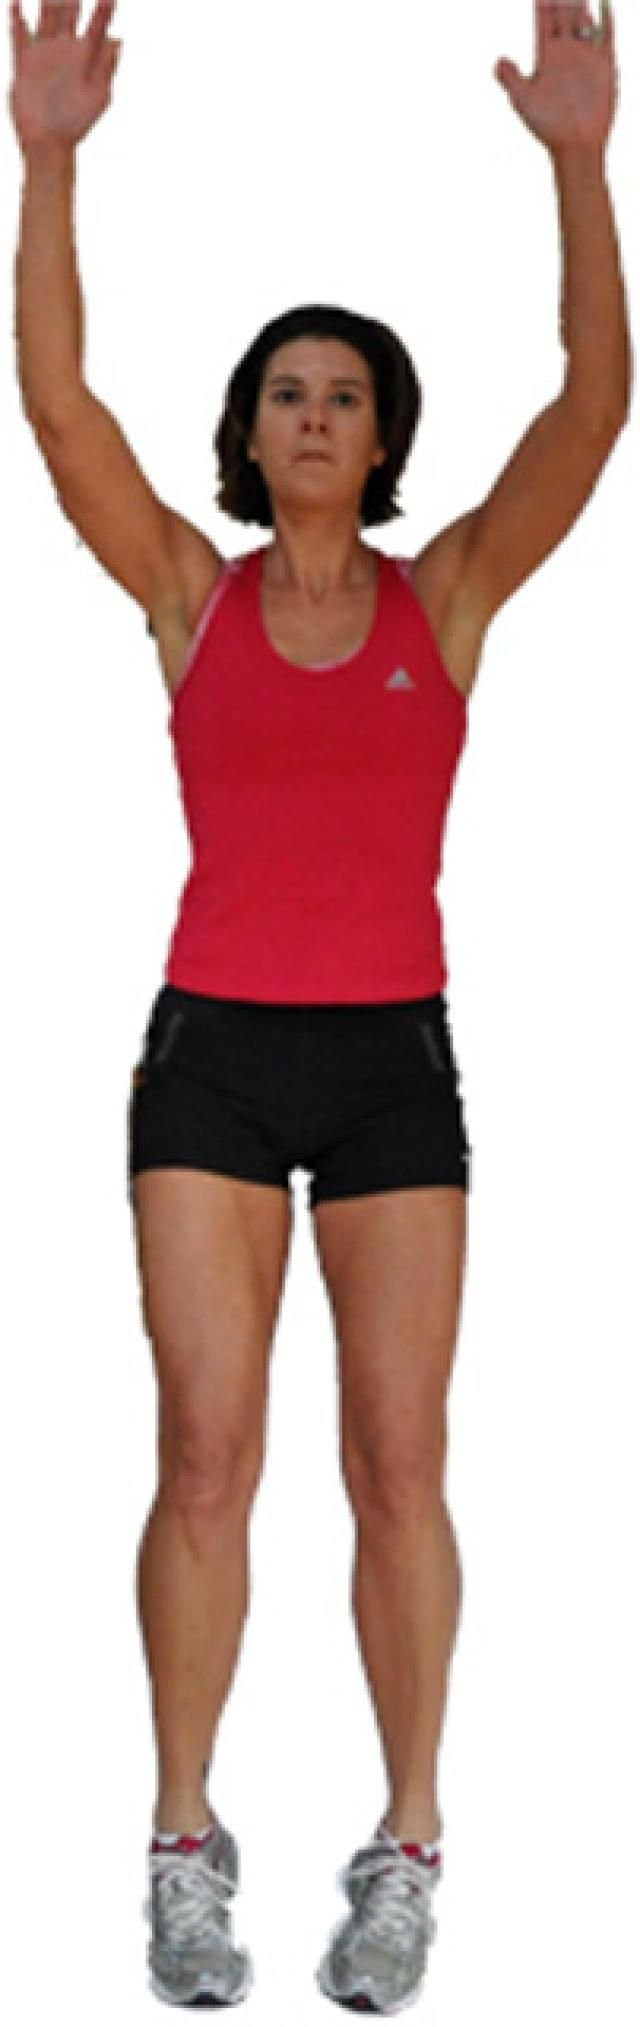 19 Effective Cardio Exercises You Can Do at Home: Squat Jumps